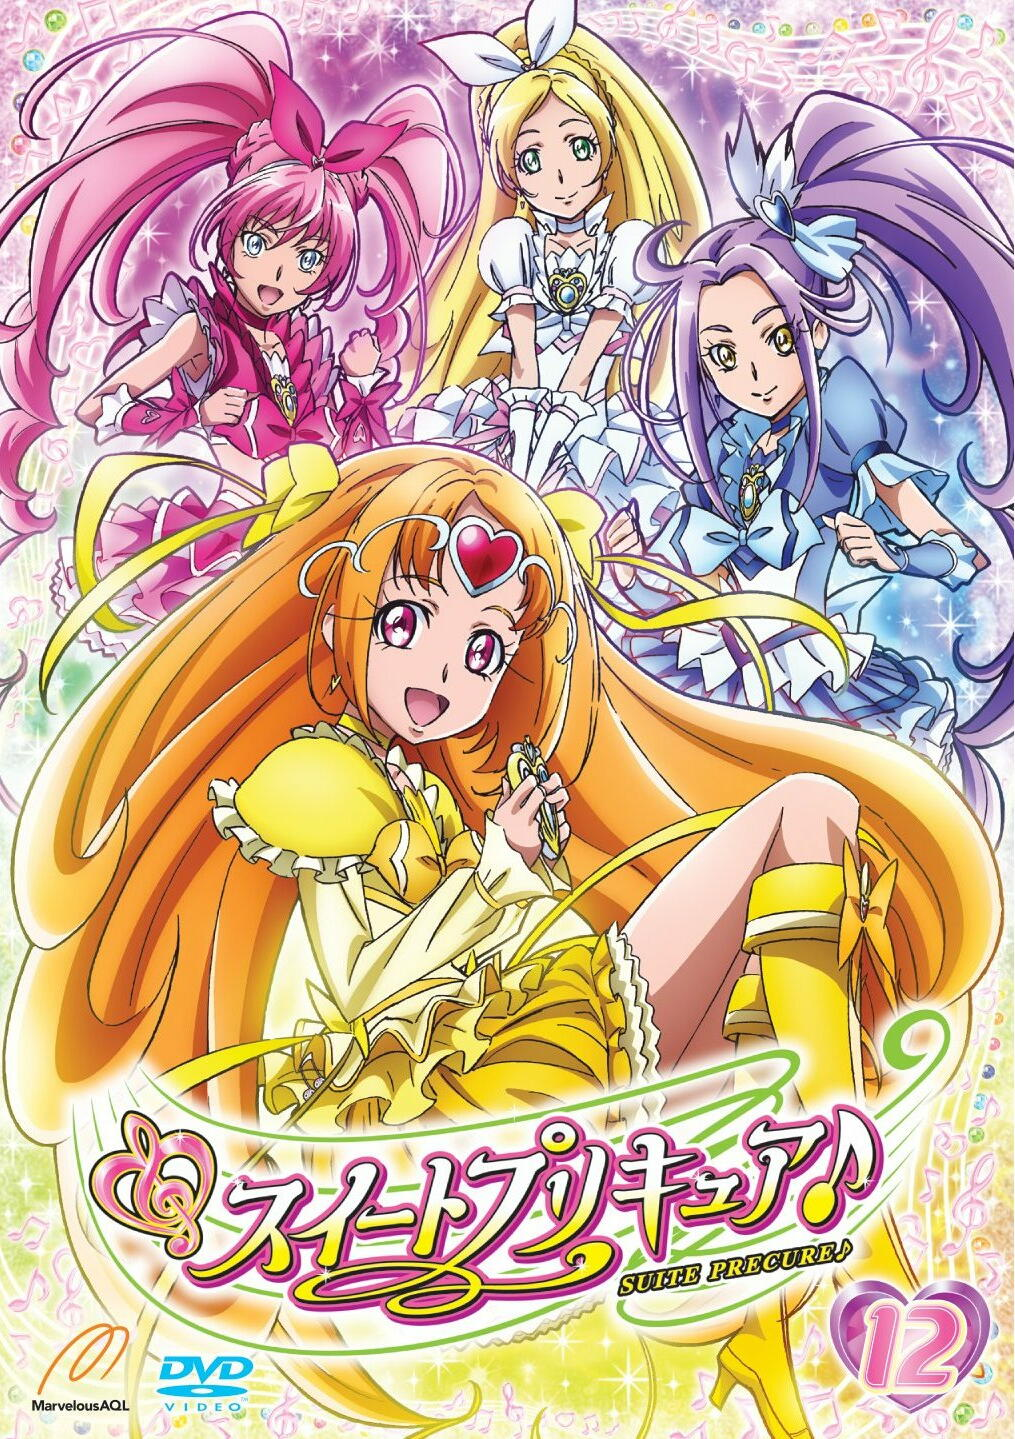 My Review Of Suite Pretty Cure Precure